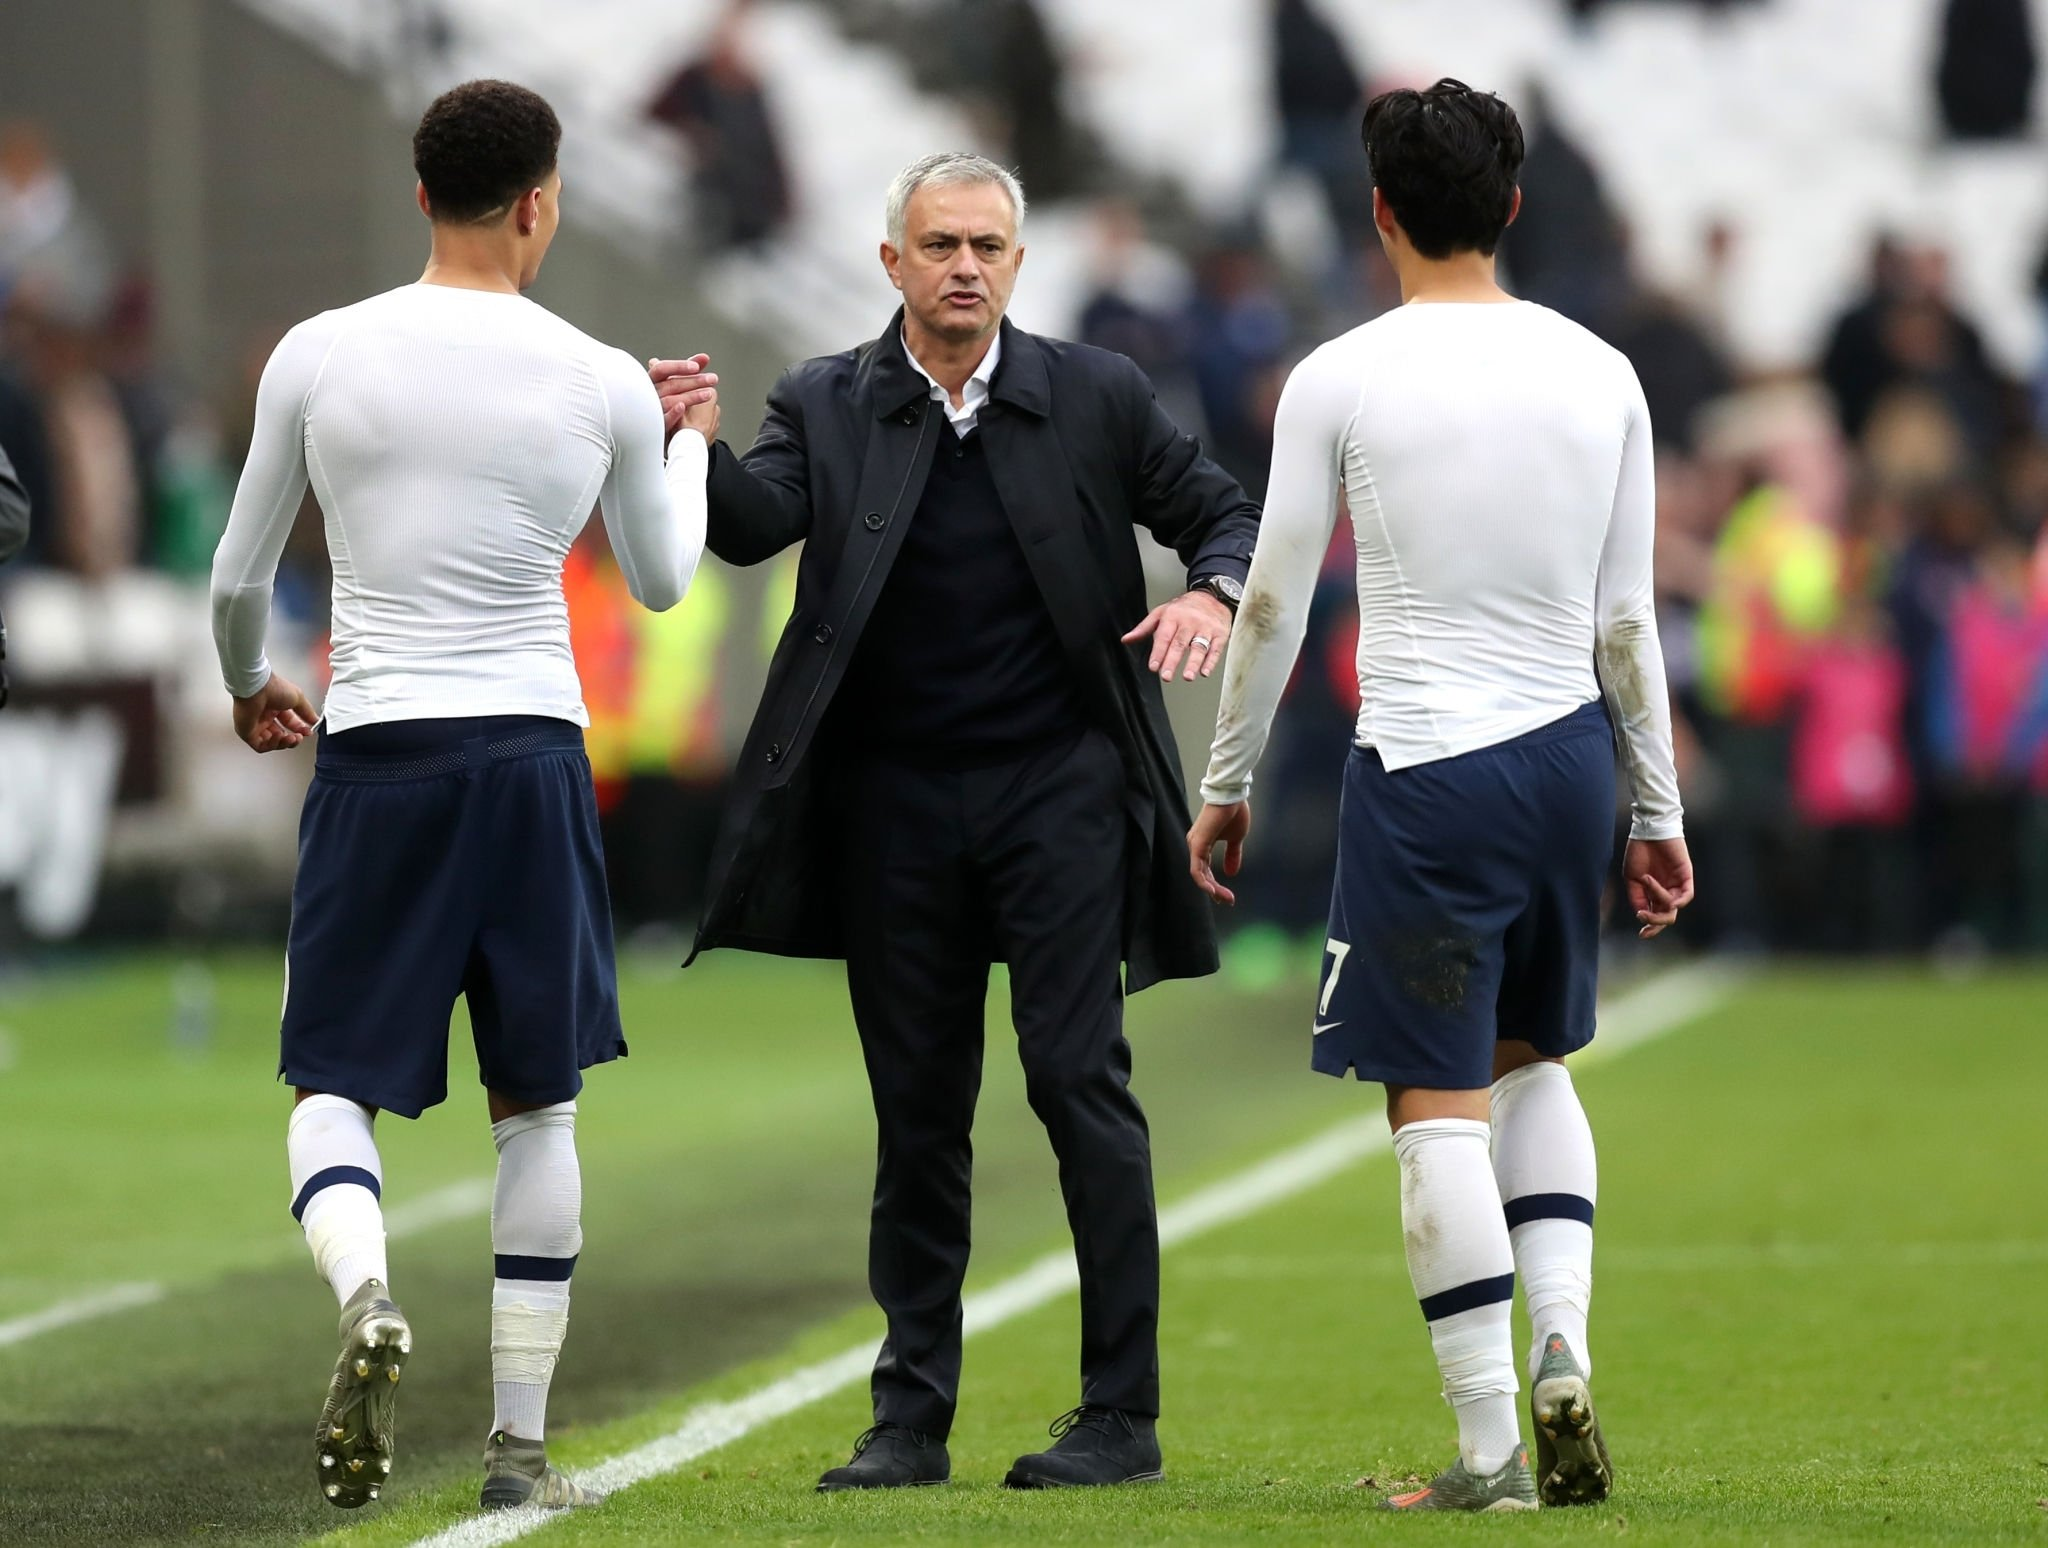 Mourinho Talks Up Happiness With New Job, Spurs' 1st Away Win in 10 Months